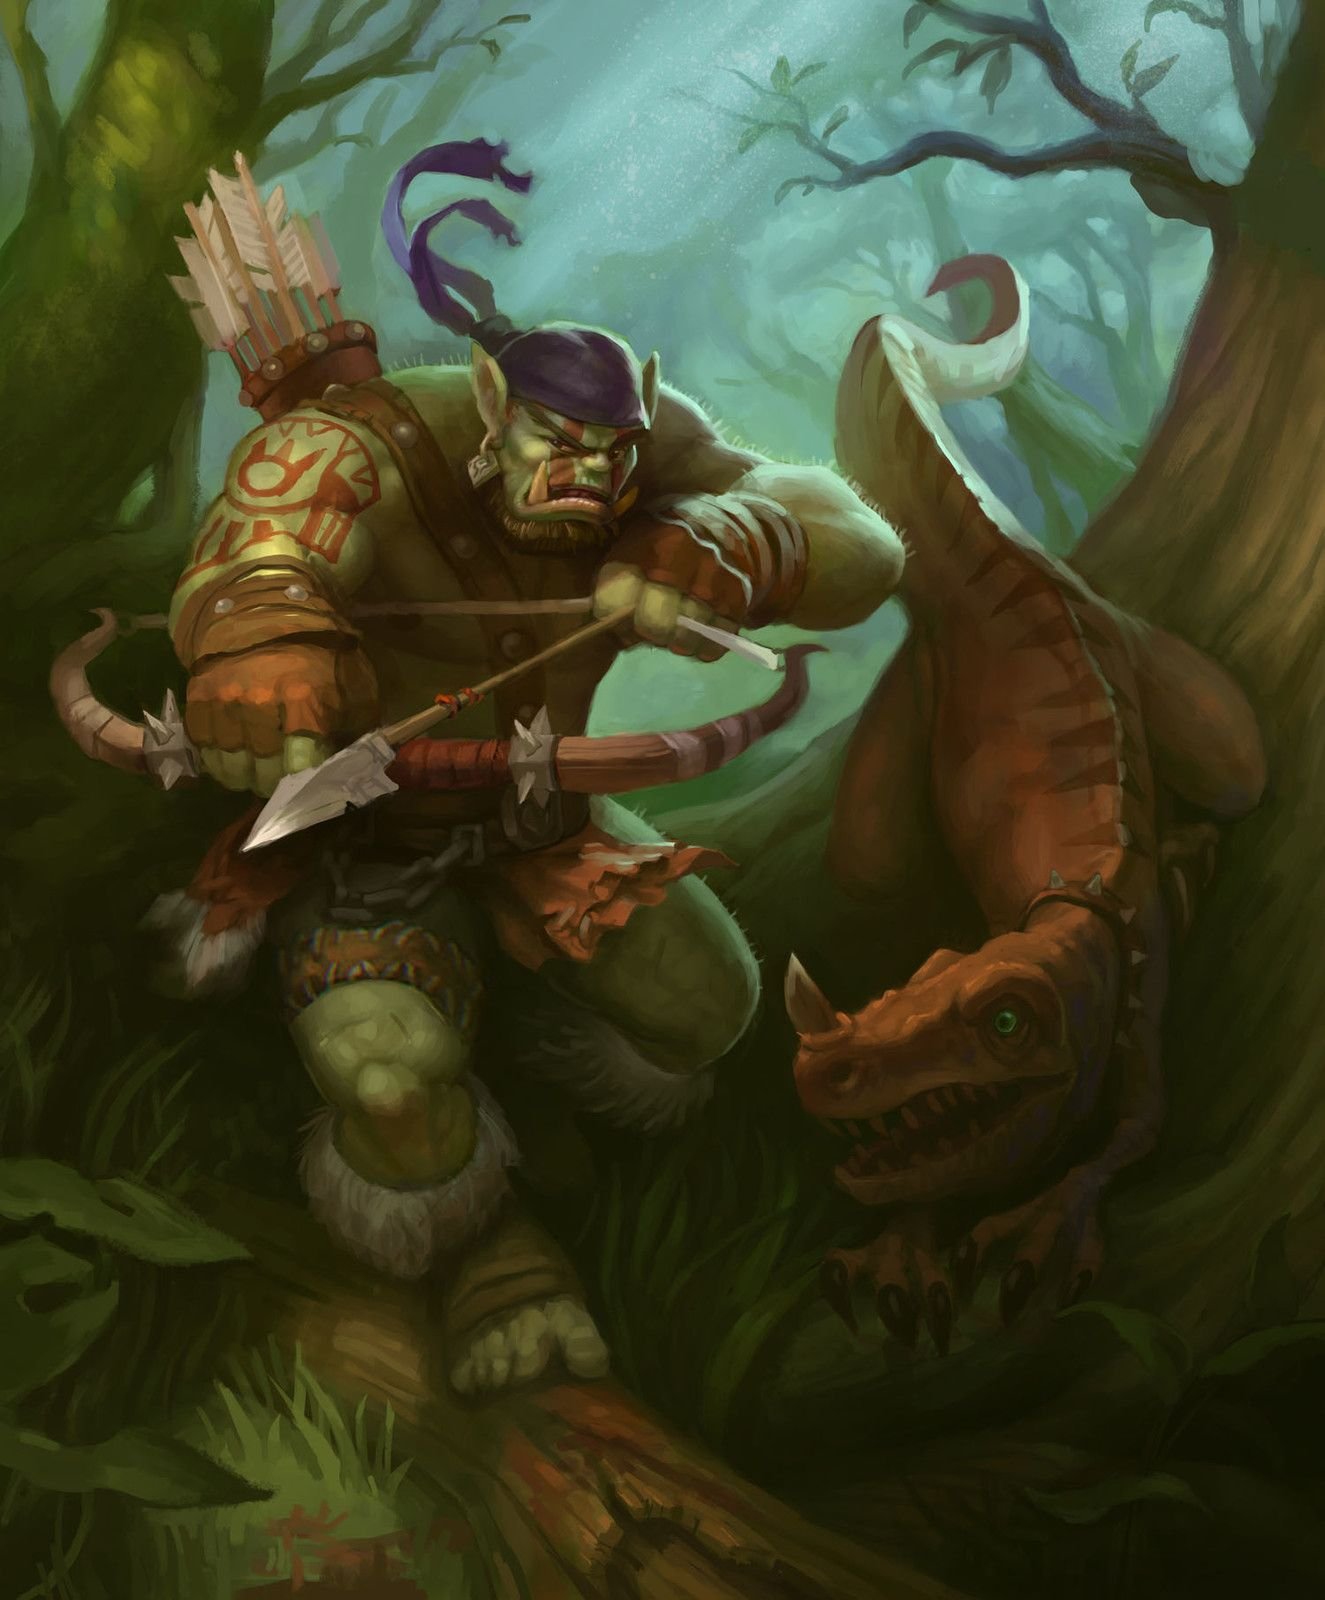 Pin by Kevin Daignault on Fantasy - Half-Orcs/Orcs | World